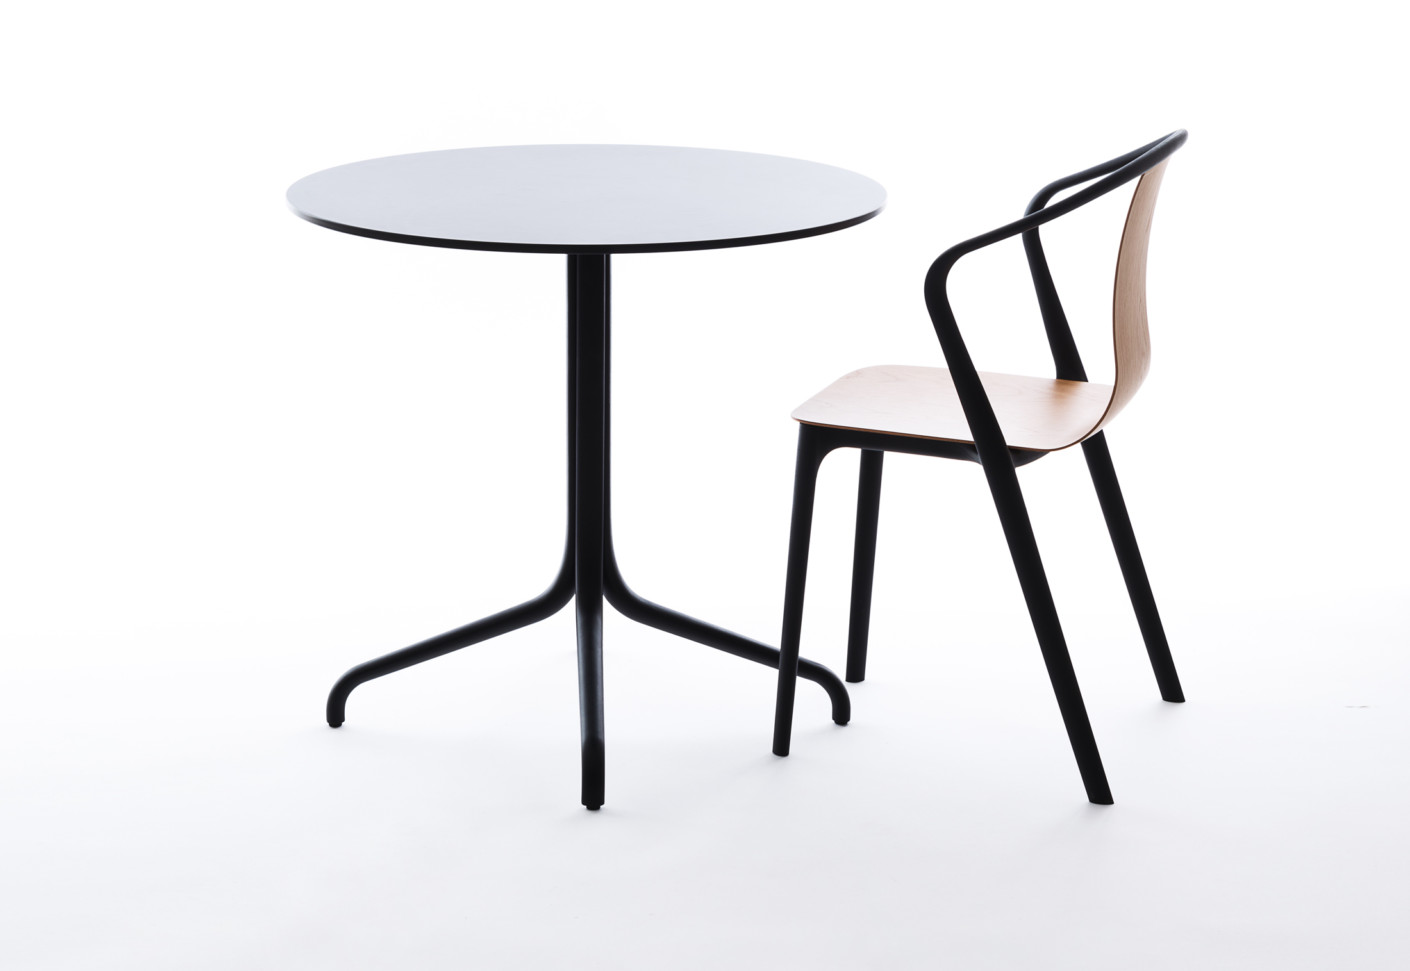 Belevile bistro table by Vitra | STYLEPARK